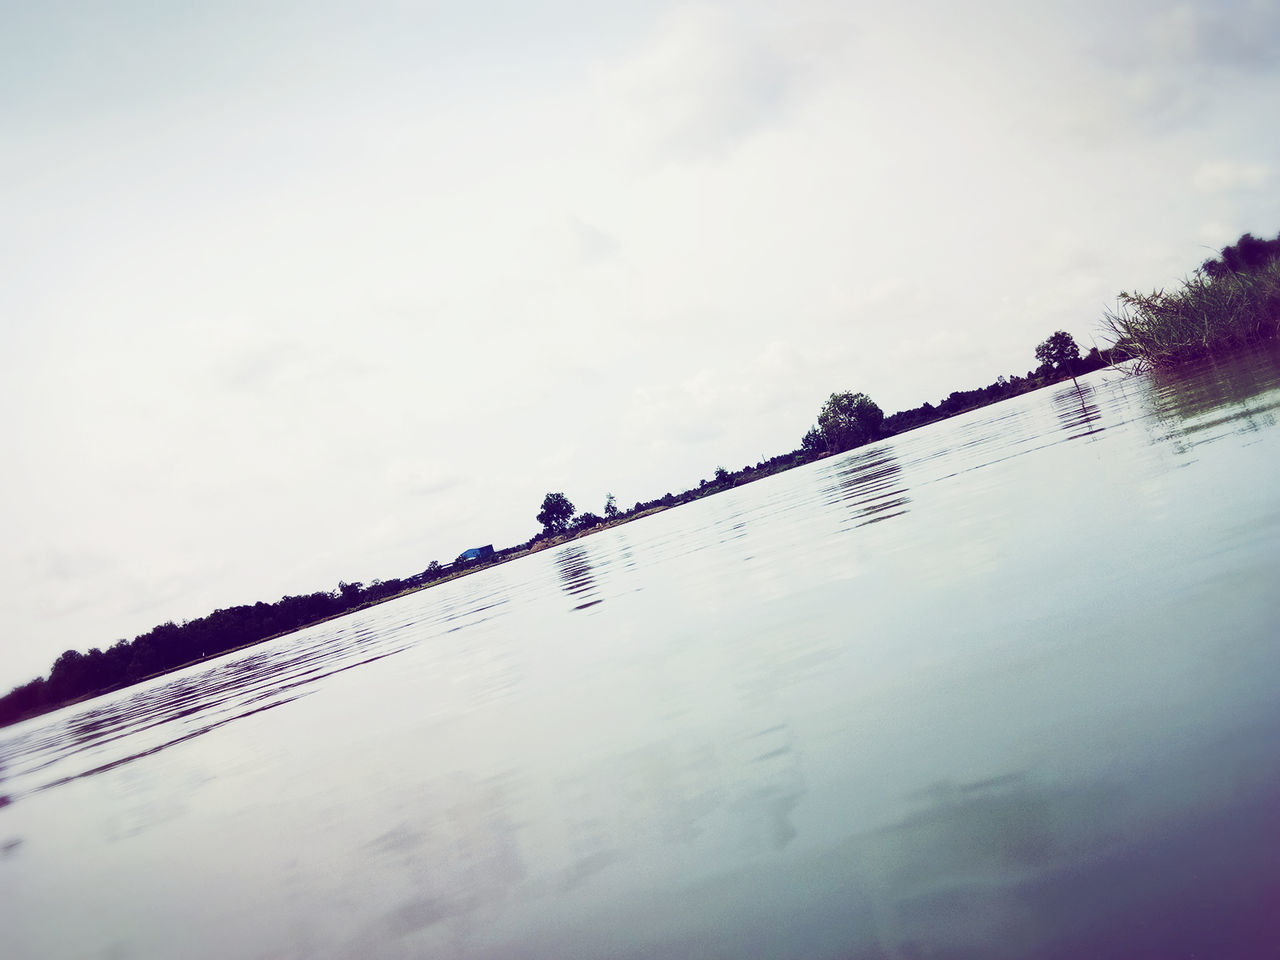 sky, water, cloud - sky, reflection, day, outdoors, nature, low angle view, large group of people, scenics, beauty in nature, tree, people